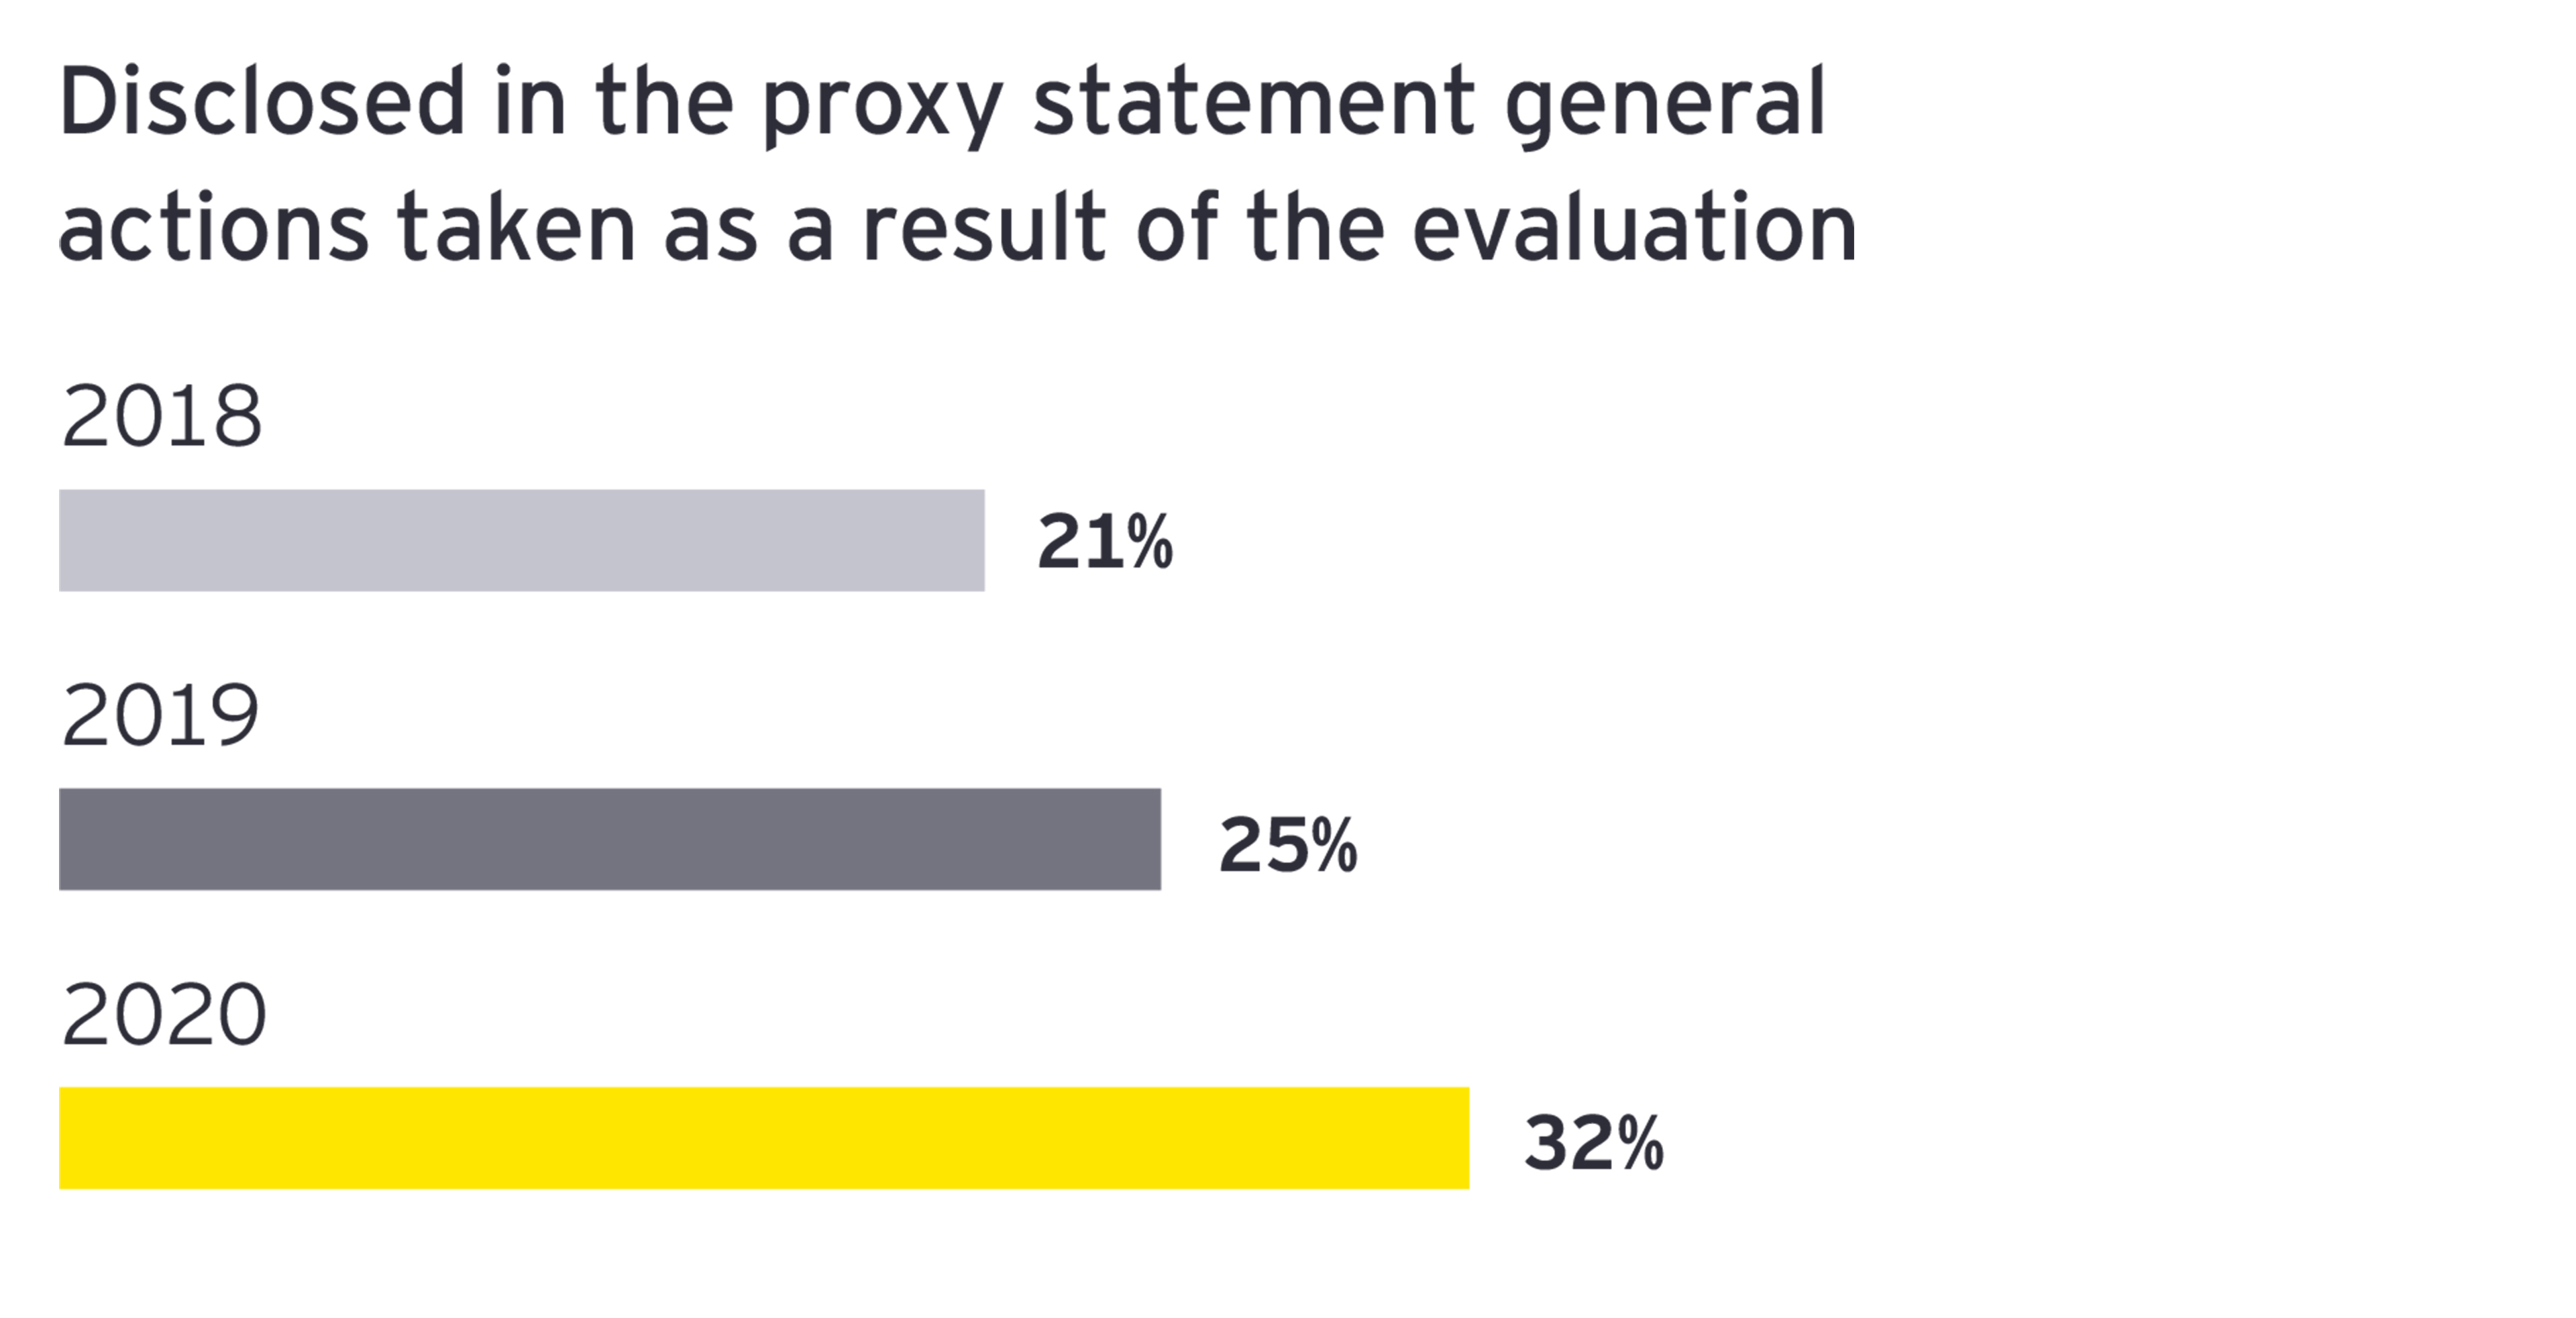 EY - Disclosed in the proxy statement general